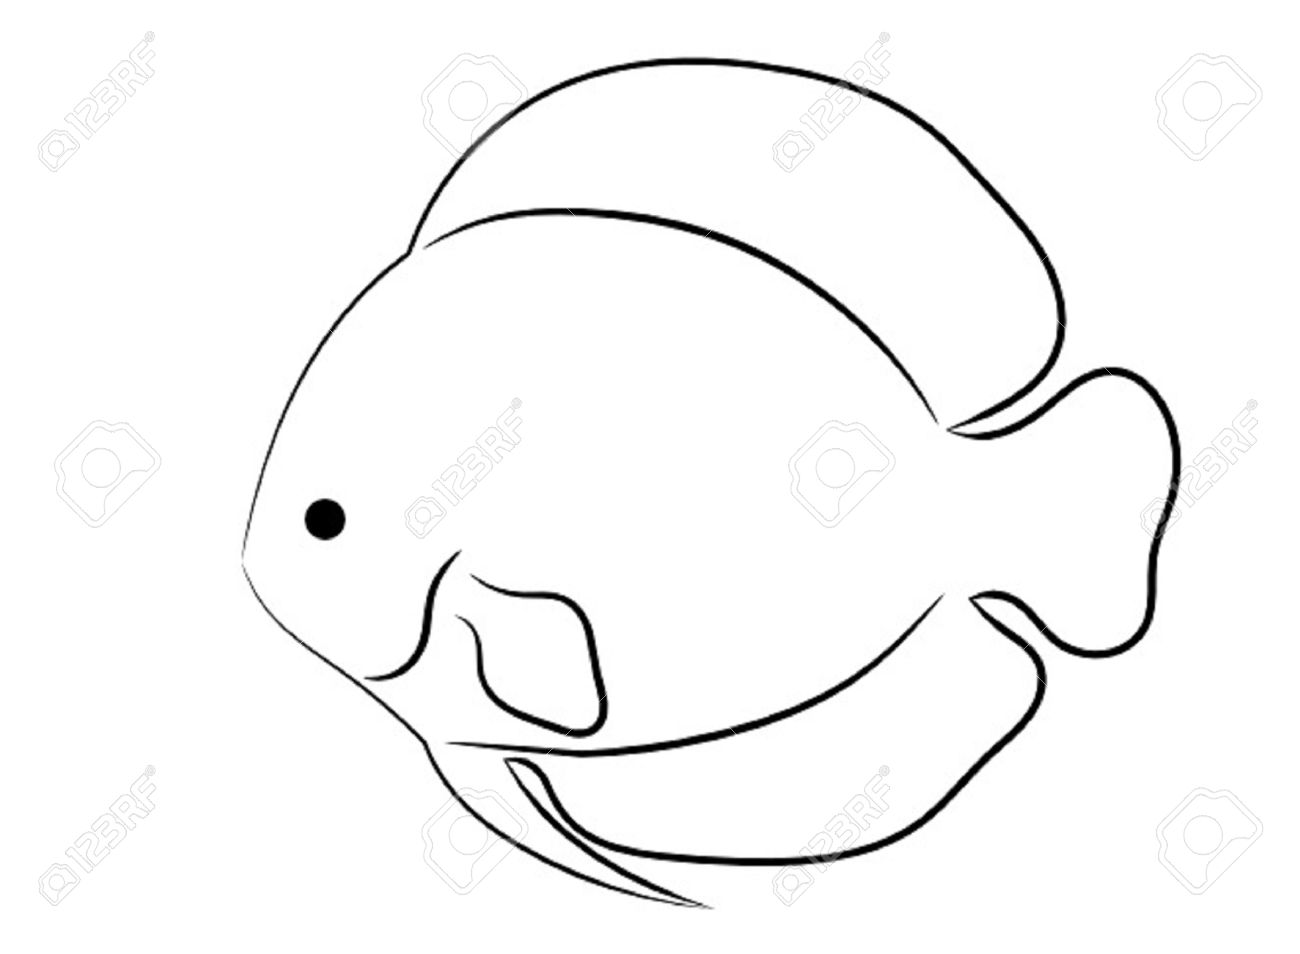 1300x954 Rounded Tropical Fish Simple Outline Isolated On White Background